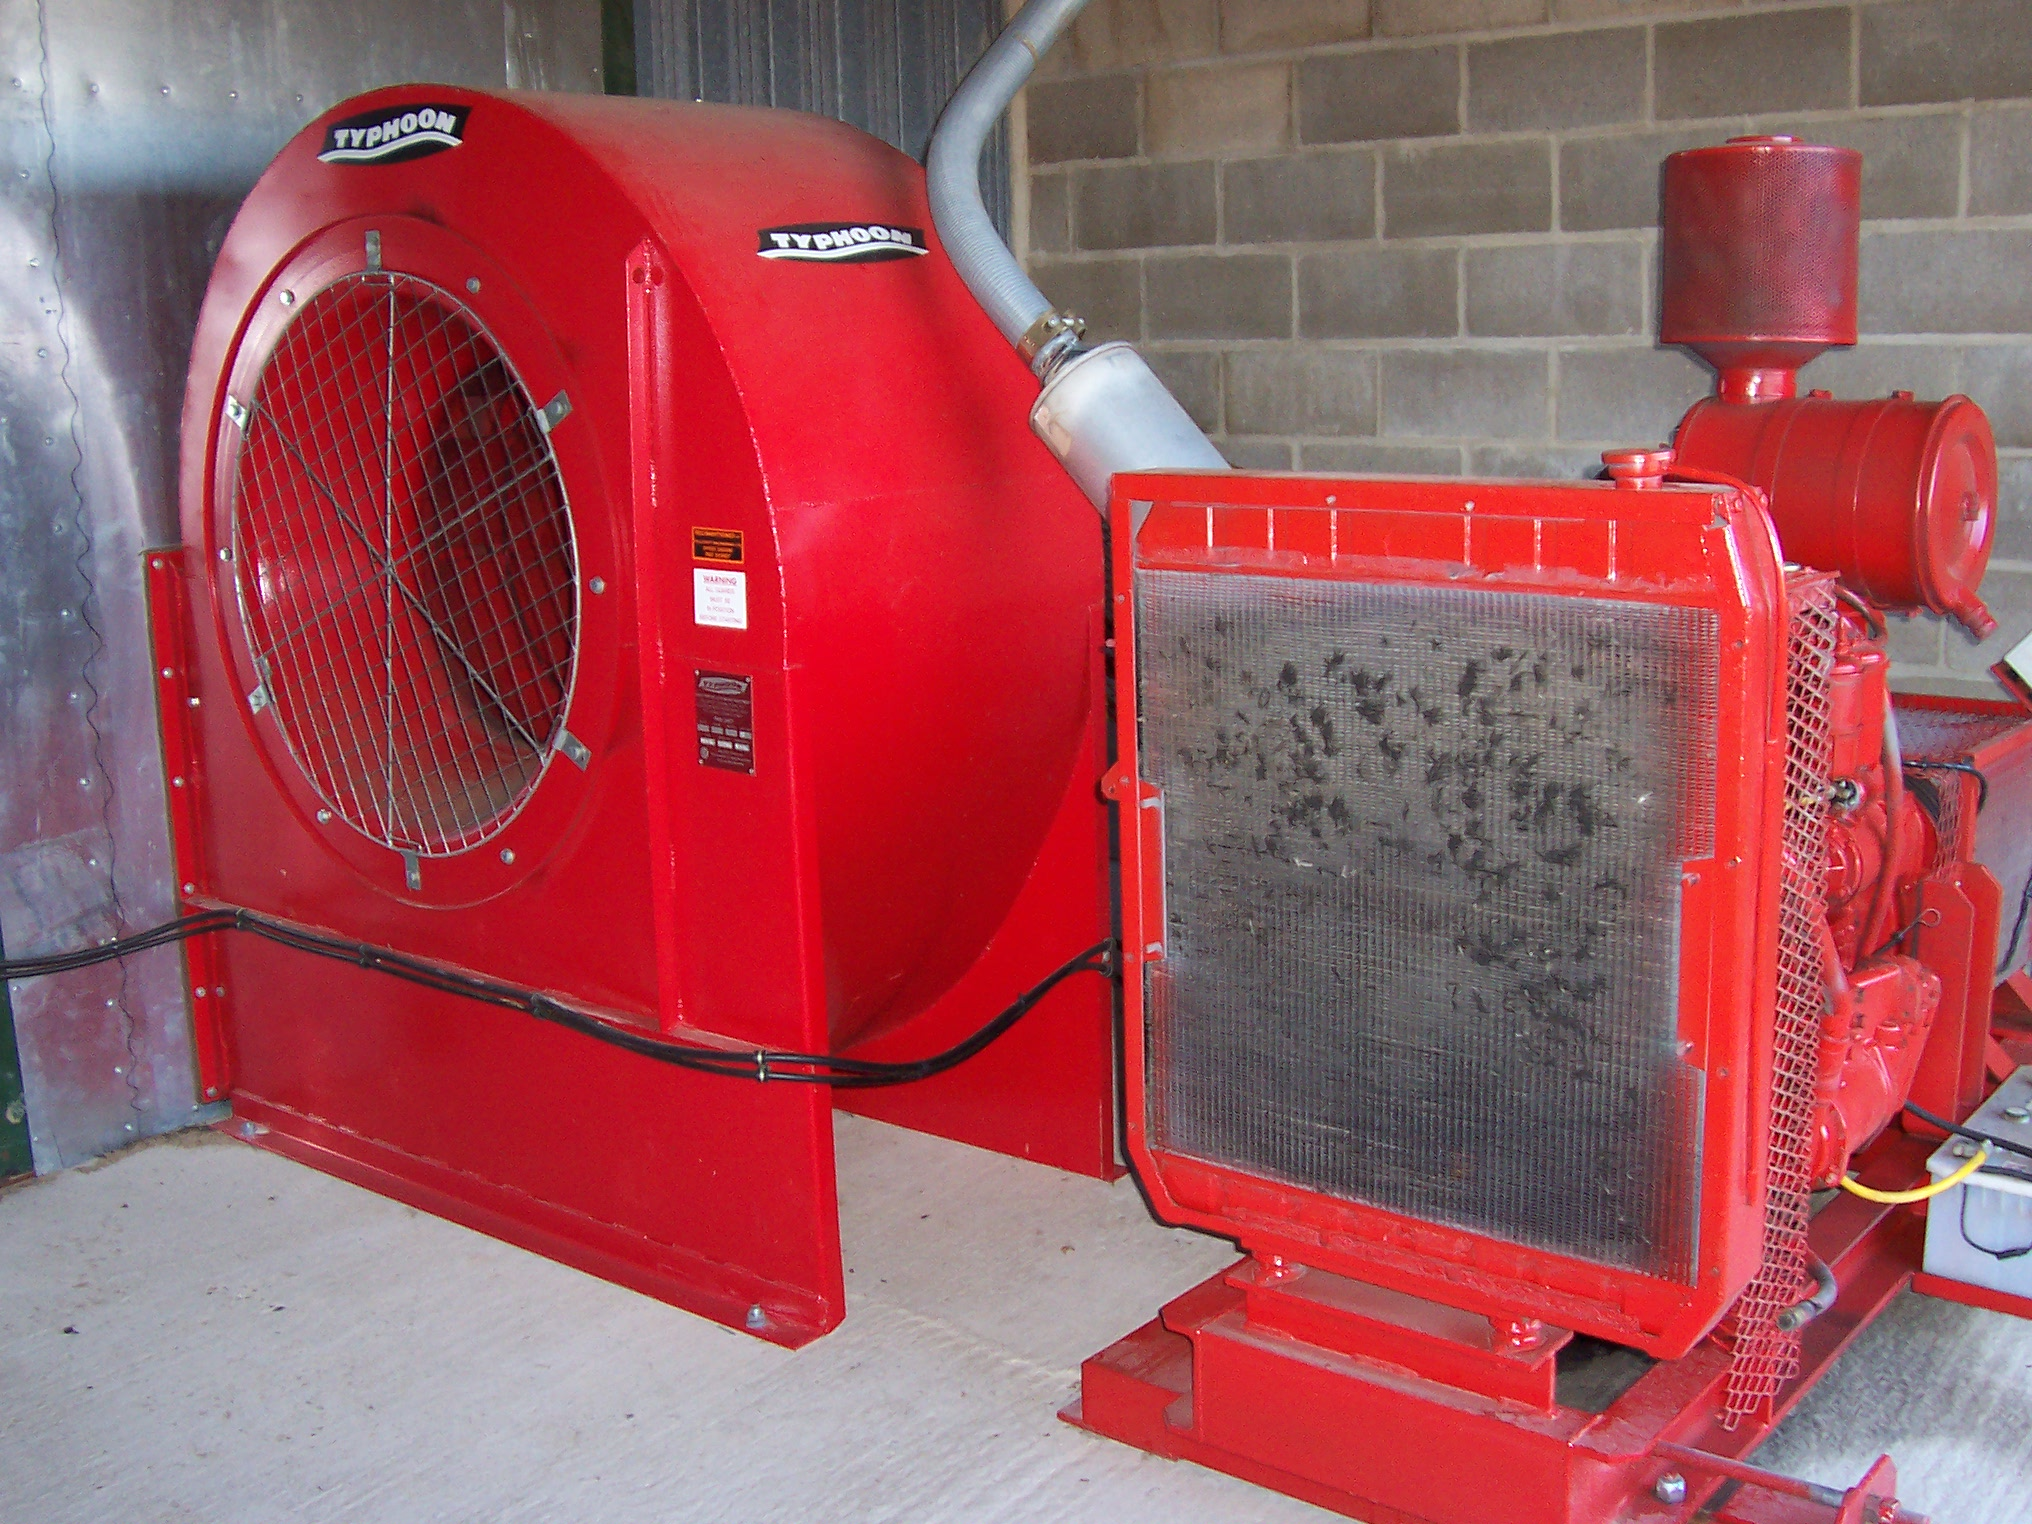 Engine driven fan unit